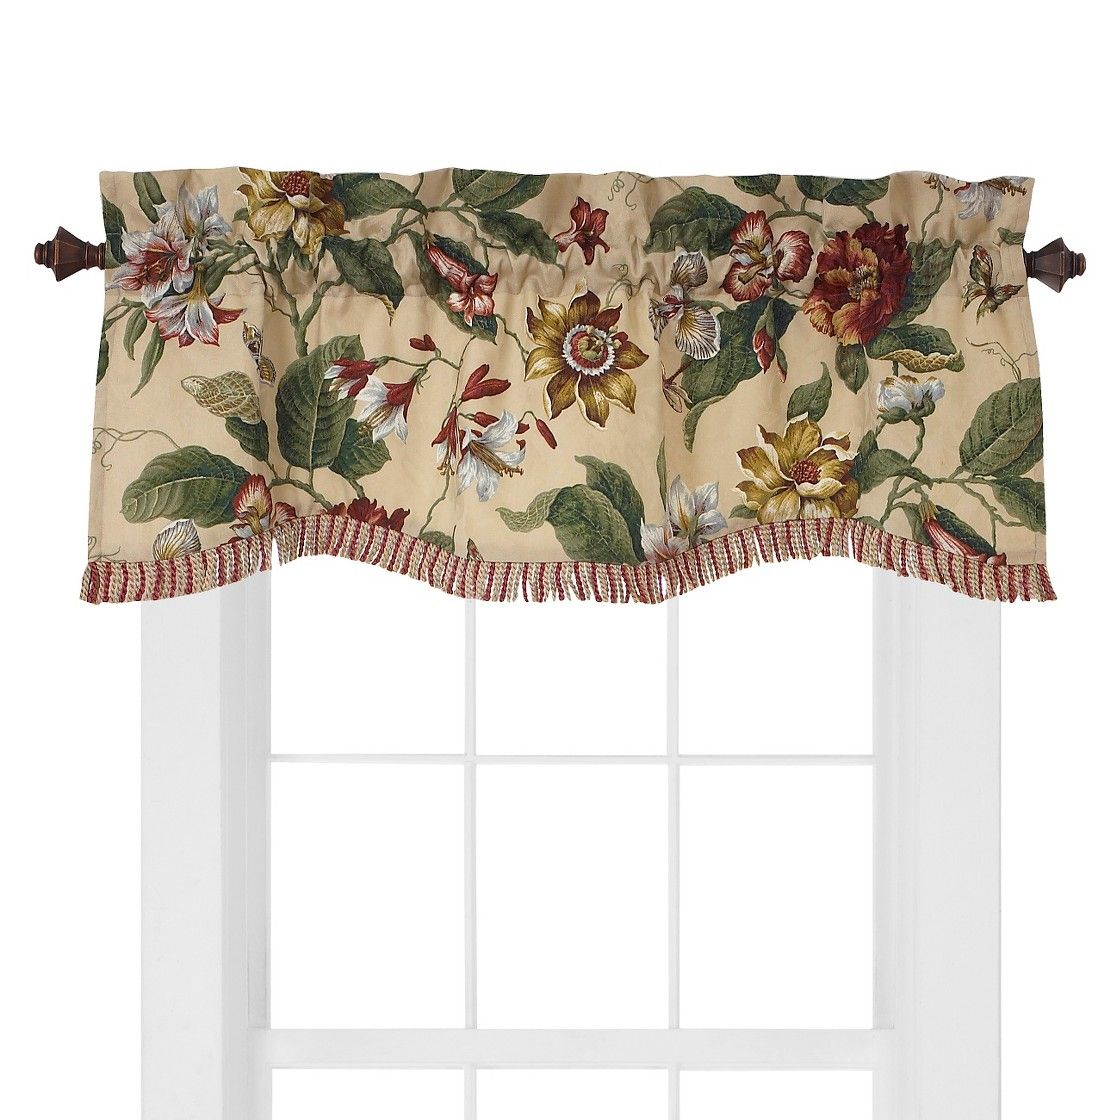 Waverly Laurel Springs Valance Parchment 50 X15 Window Valance Valance Valance Curtains #tailored #valances #for #living #room